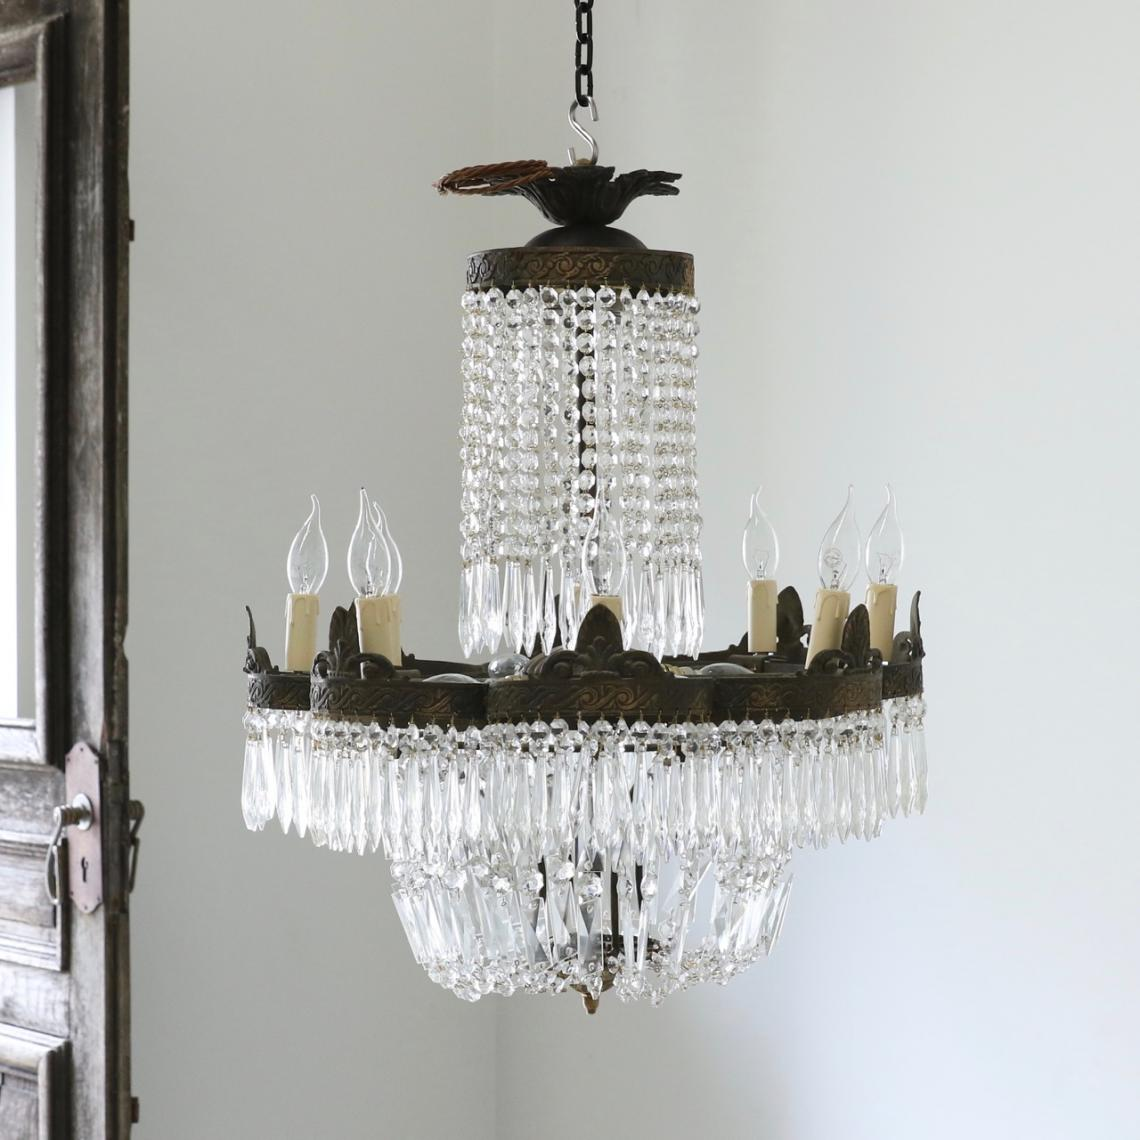 113-39 - Pair of French Chandeliers